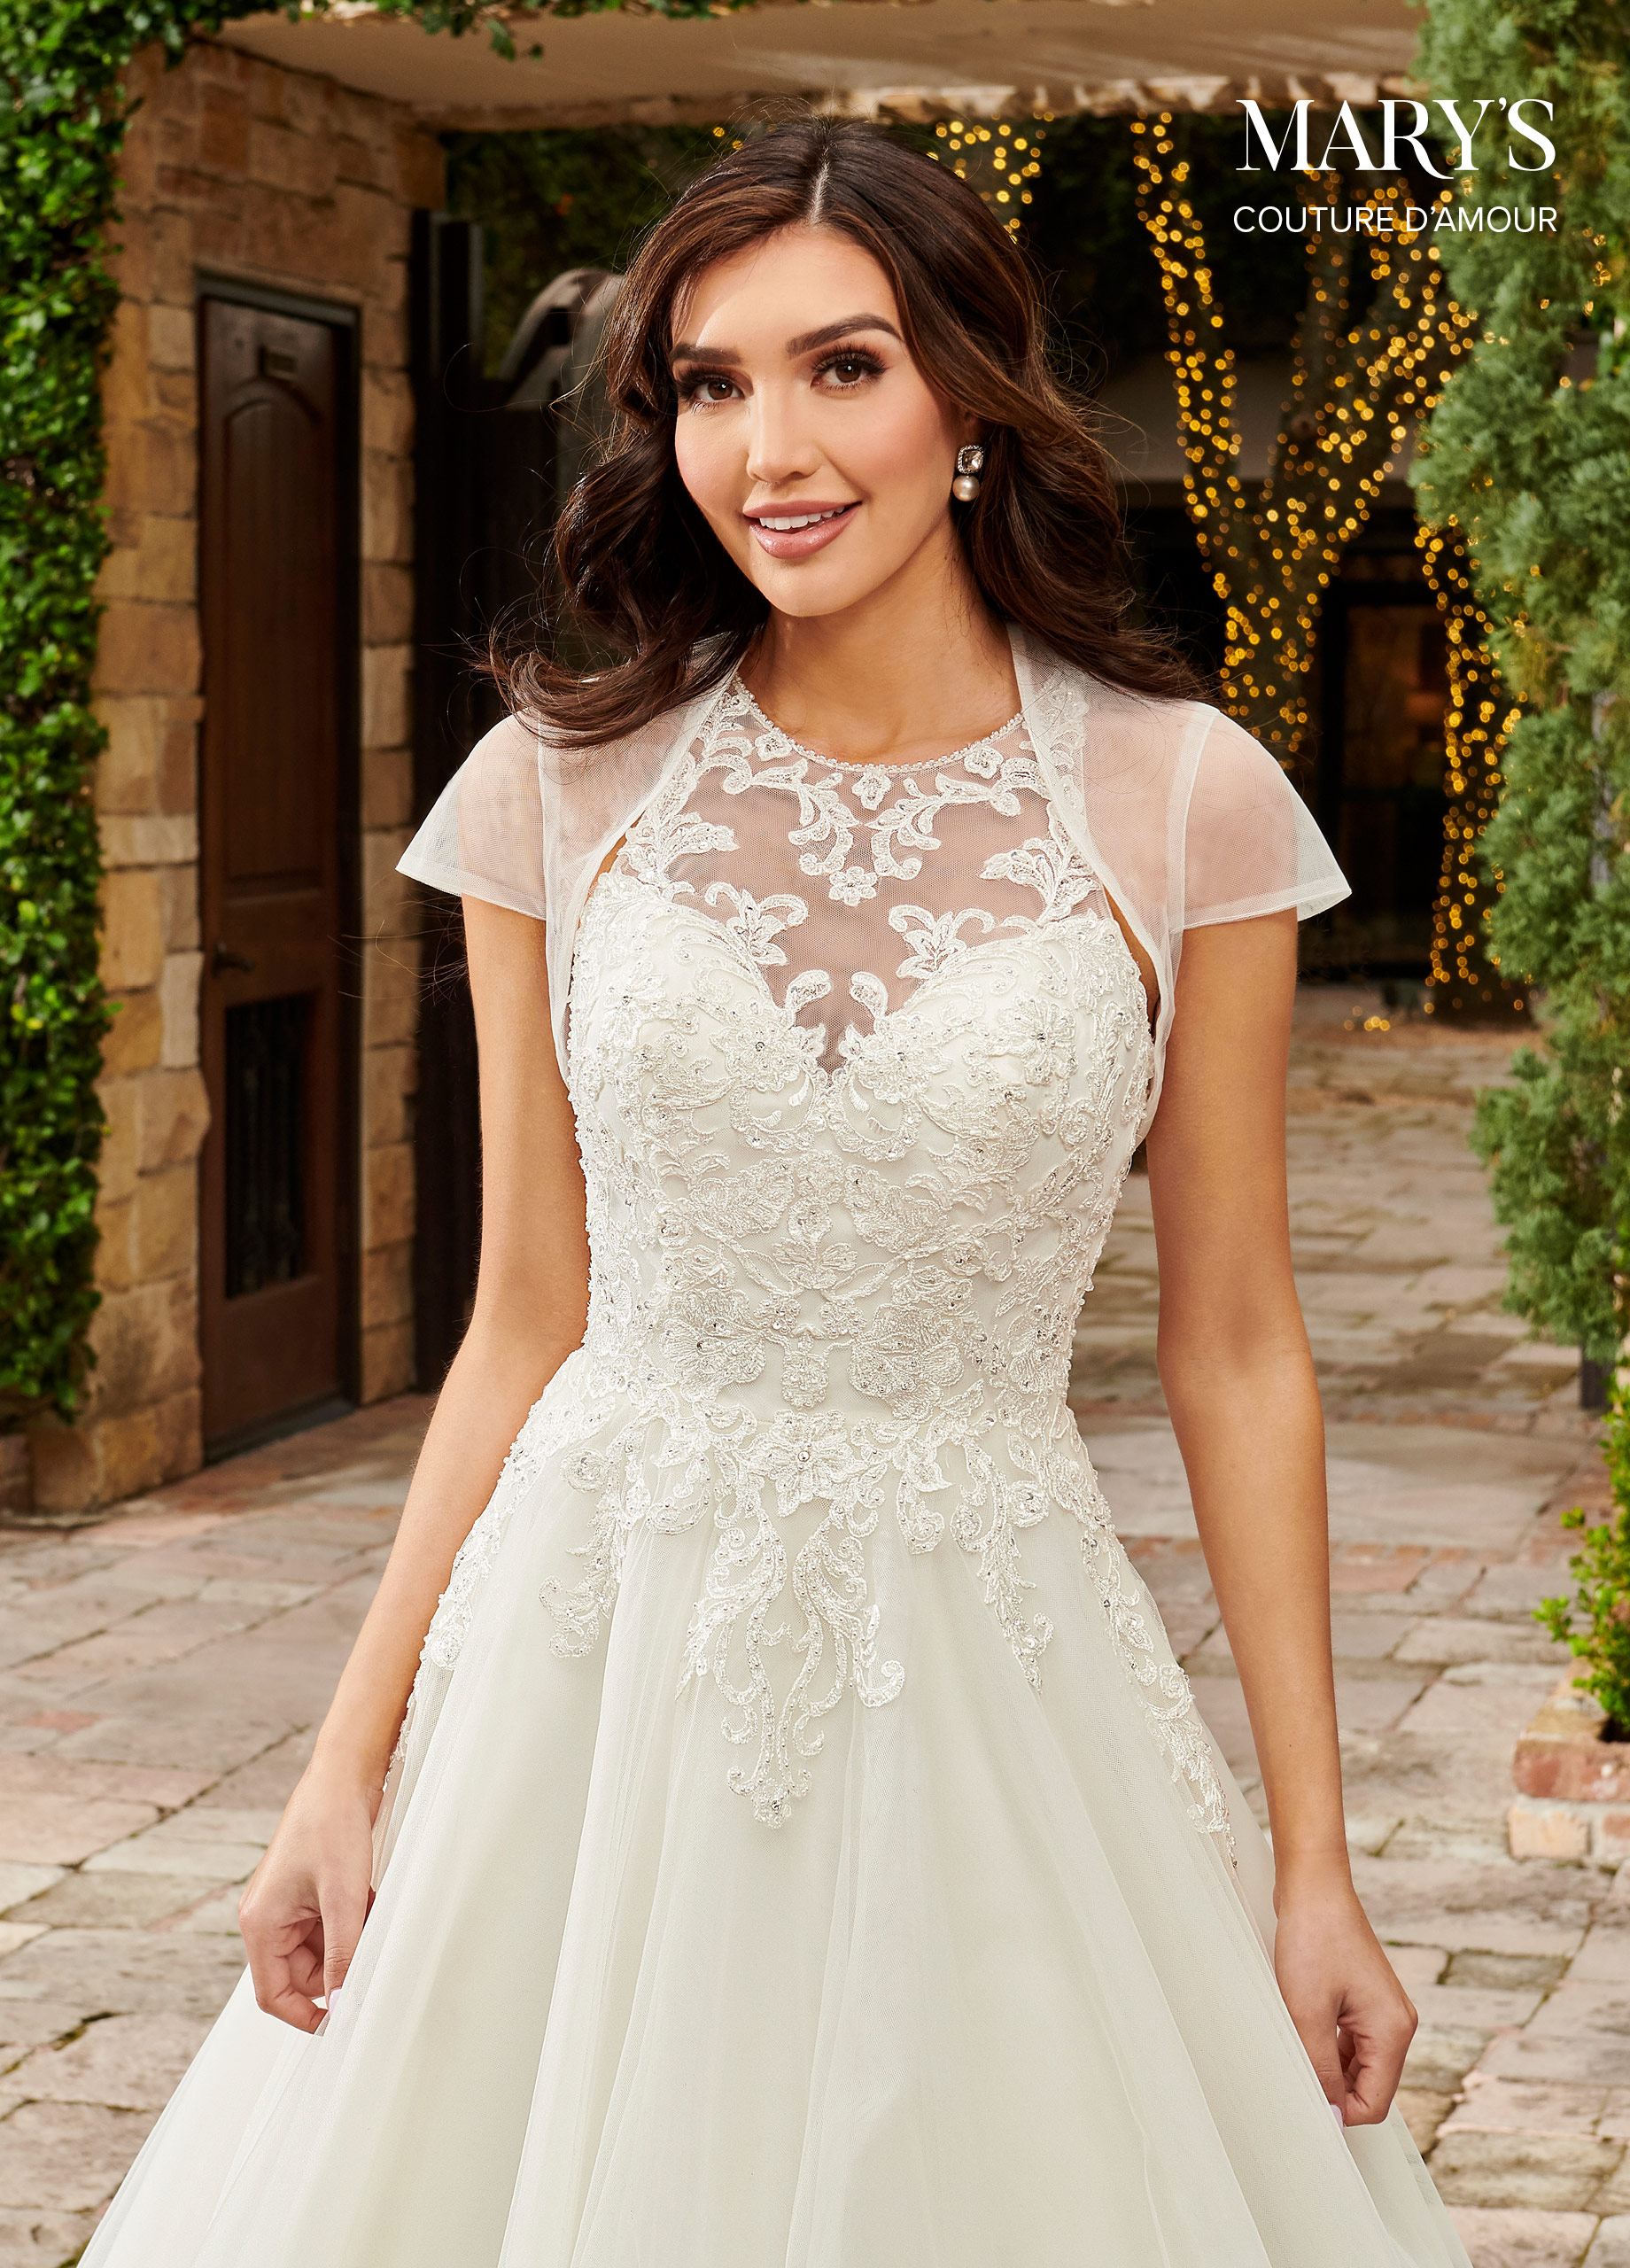 Couture Damour Bridal Dresses | Couture d'Amour | Style - MB4110